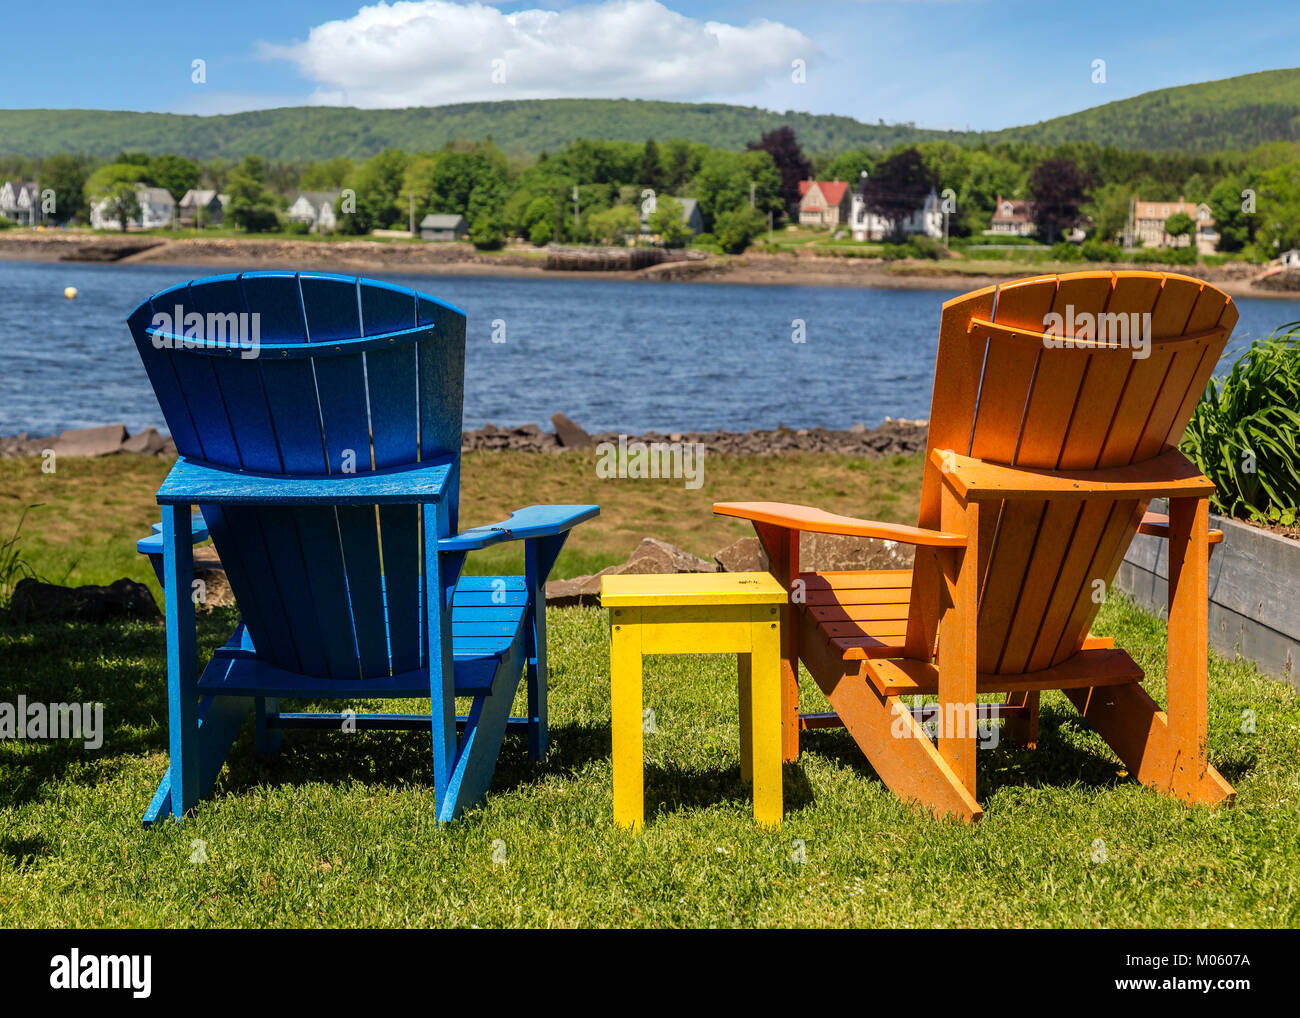 new river adirondack chairs chair step stool combo stock photos and